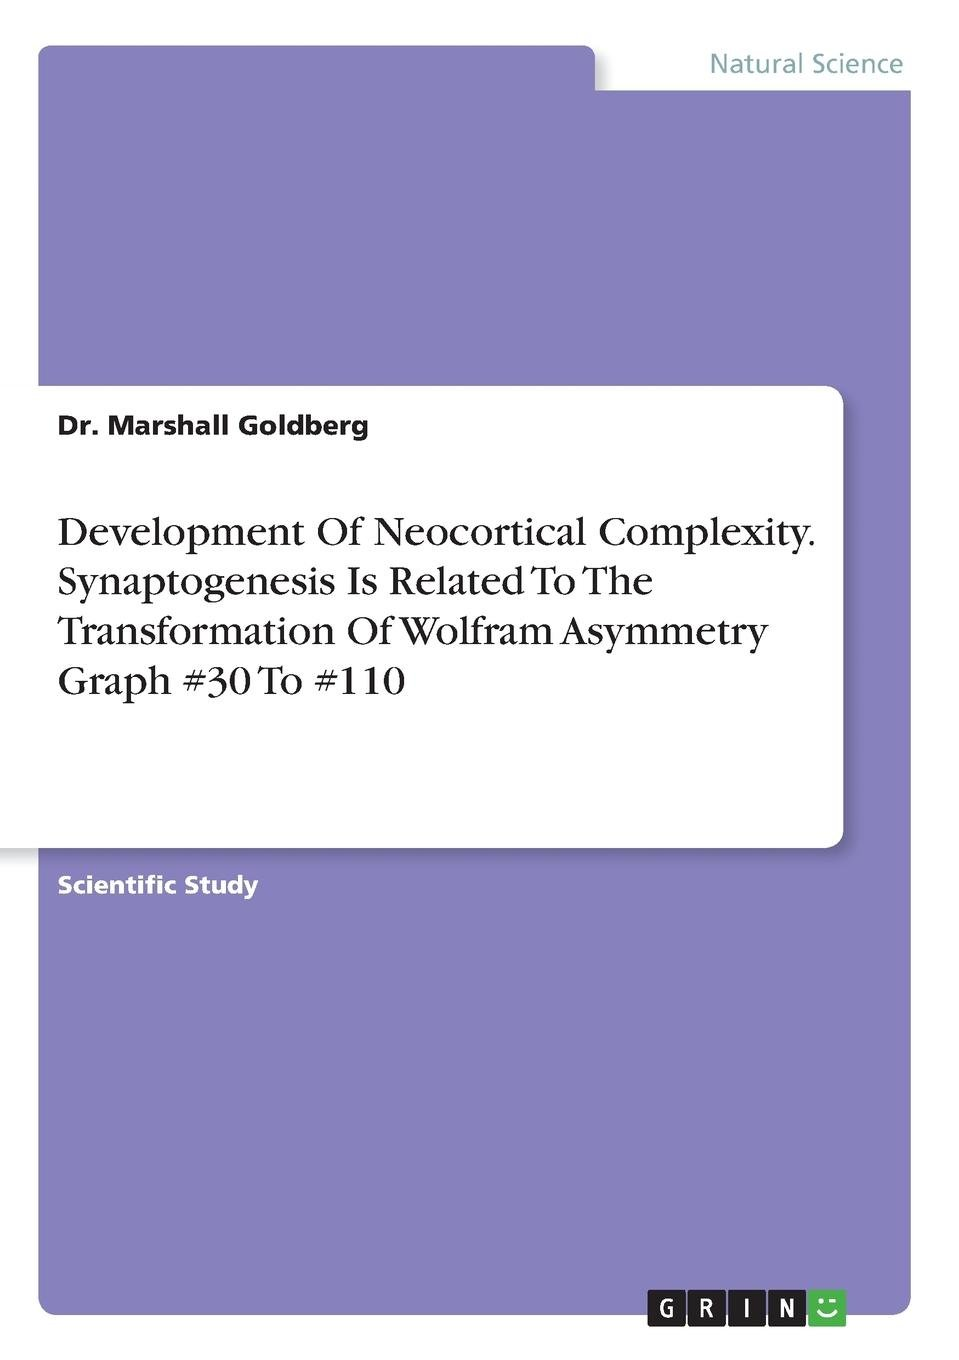 Read Online Development of Neocortical Complexity. Synaptogenesis Is Related to the Transformation of Wolfram Asymmetry Graph #30 to #110 PDF